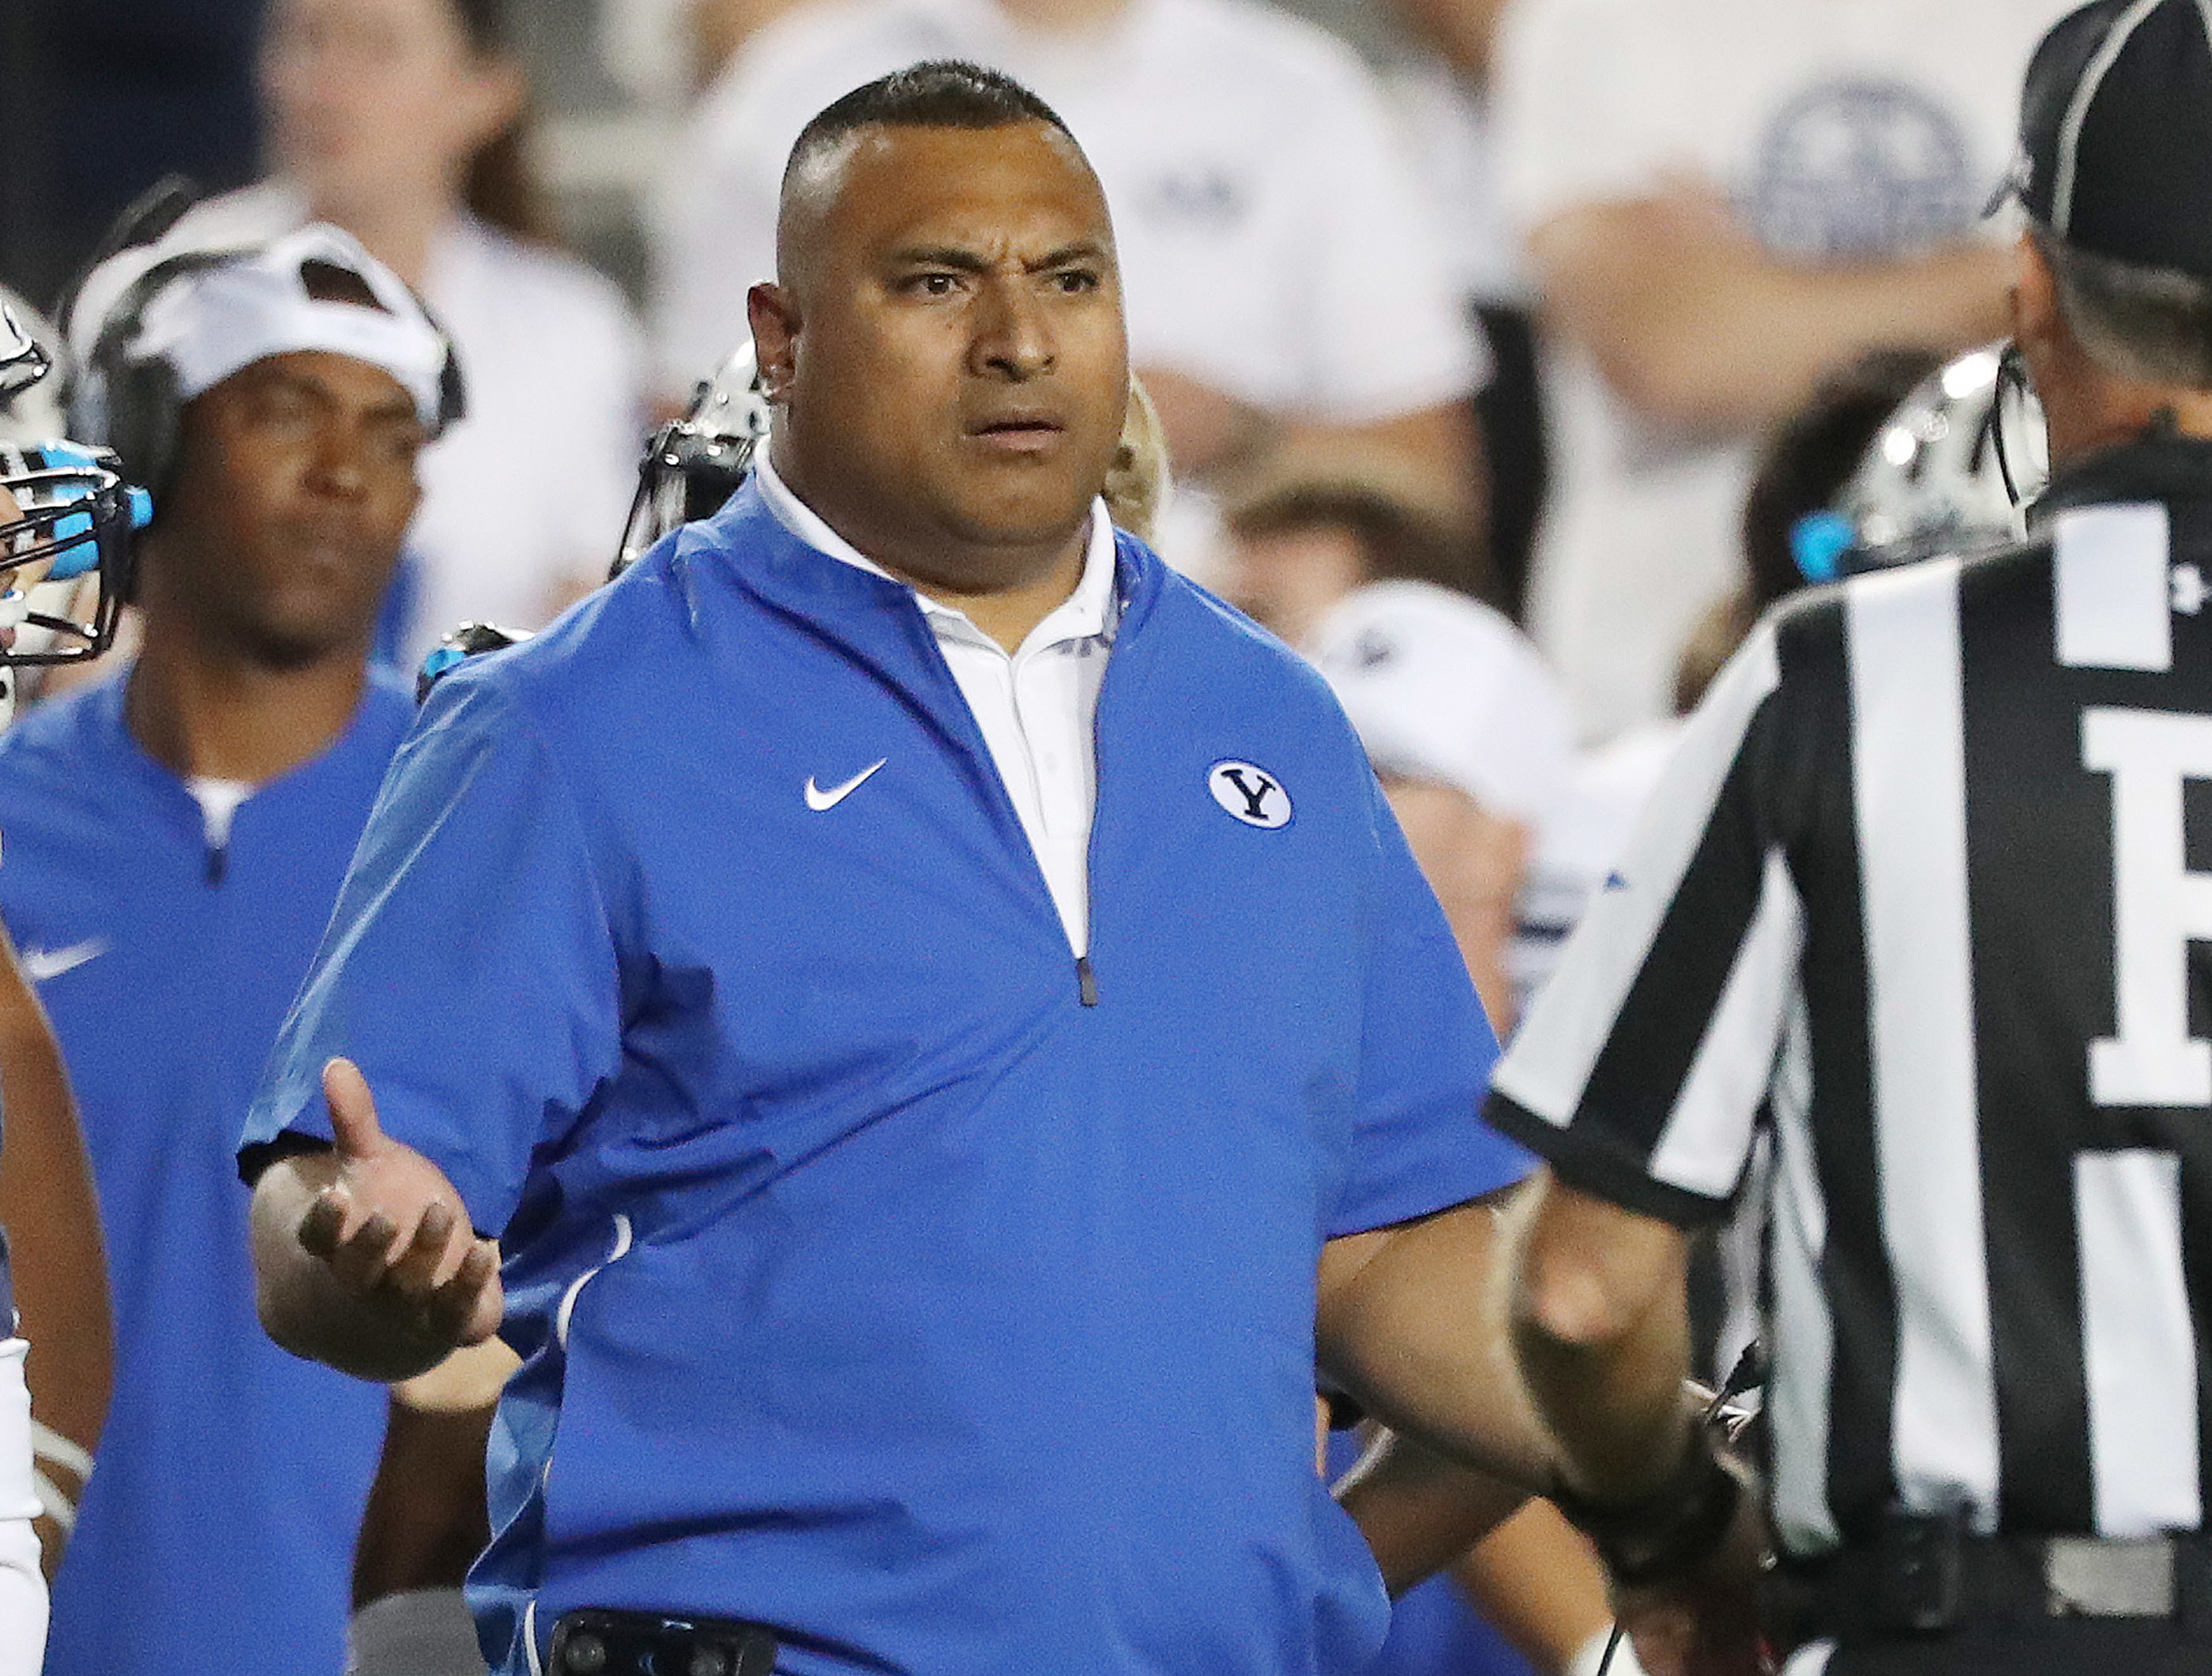 Brigham Young Cougars head coach Kalani Sitake protests the illegal touching call against the California Golden Bears in Provo on Saturday, Sept. 8, 2018.